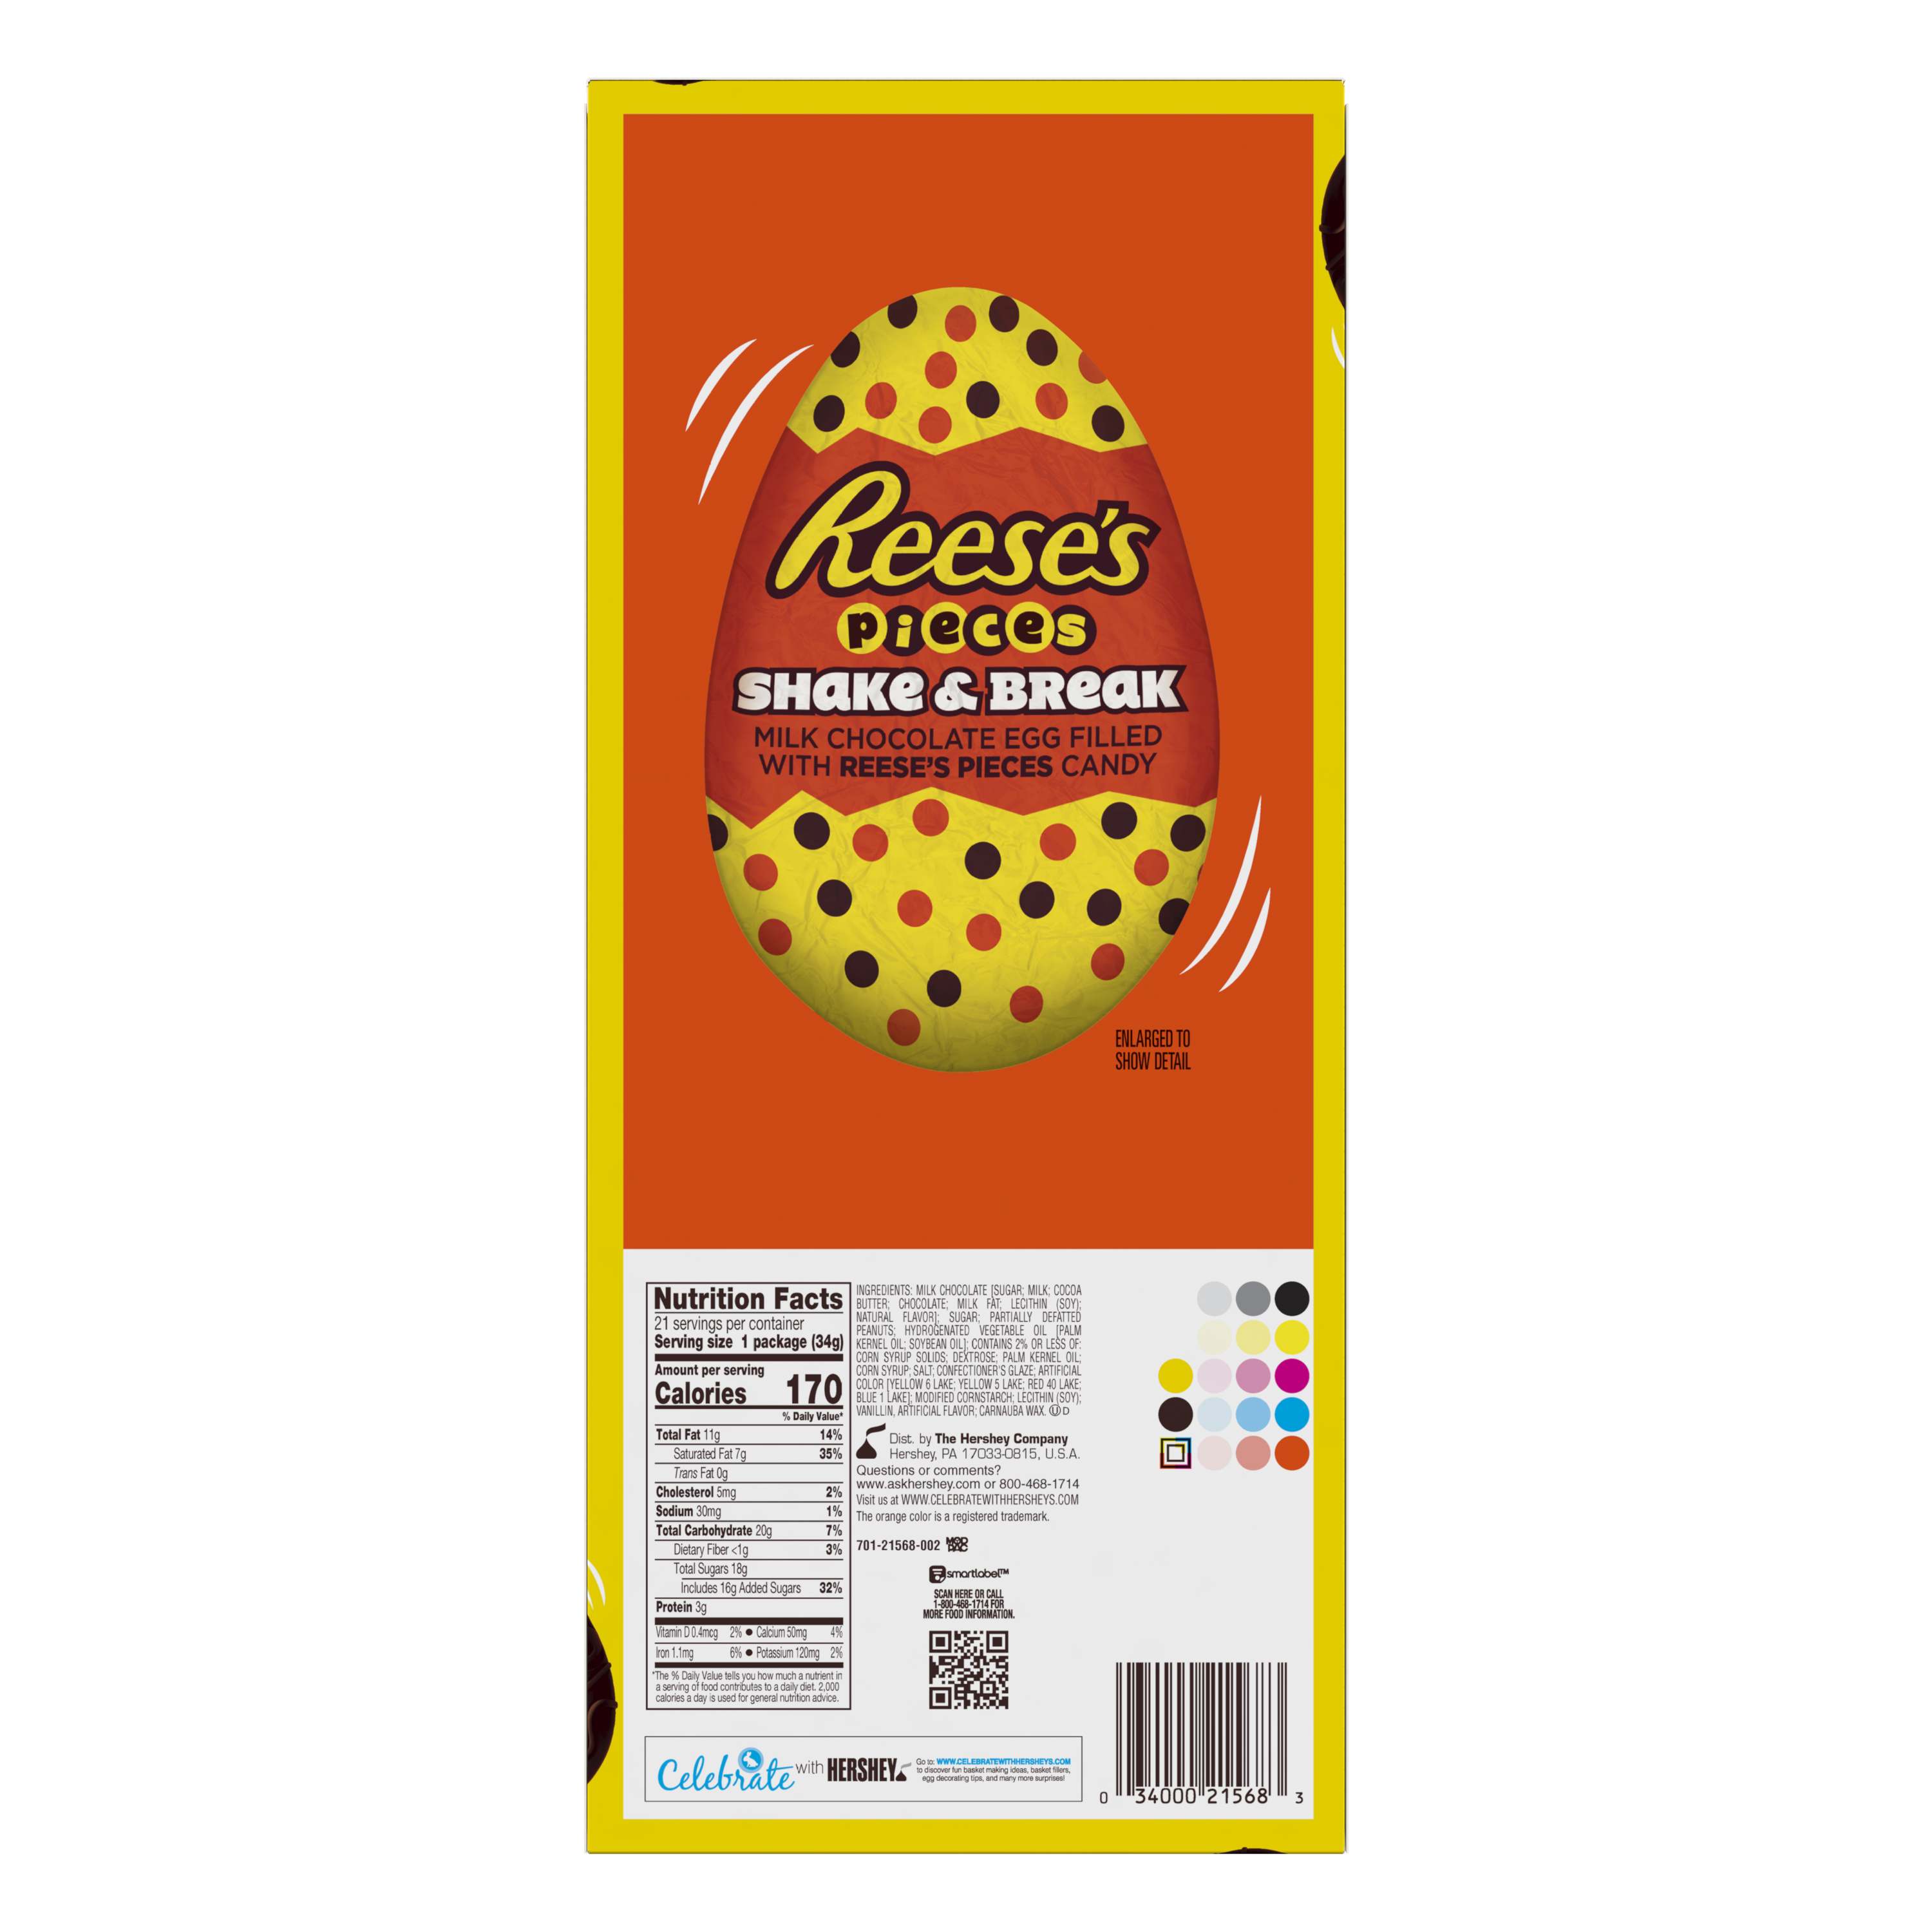 REESE'S PIECES SHAKE & BREAK Milk Chocolate Peanut Butter Eggs, 1.2 oz box, 21 eggs - Back of Package